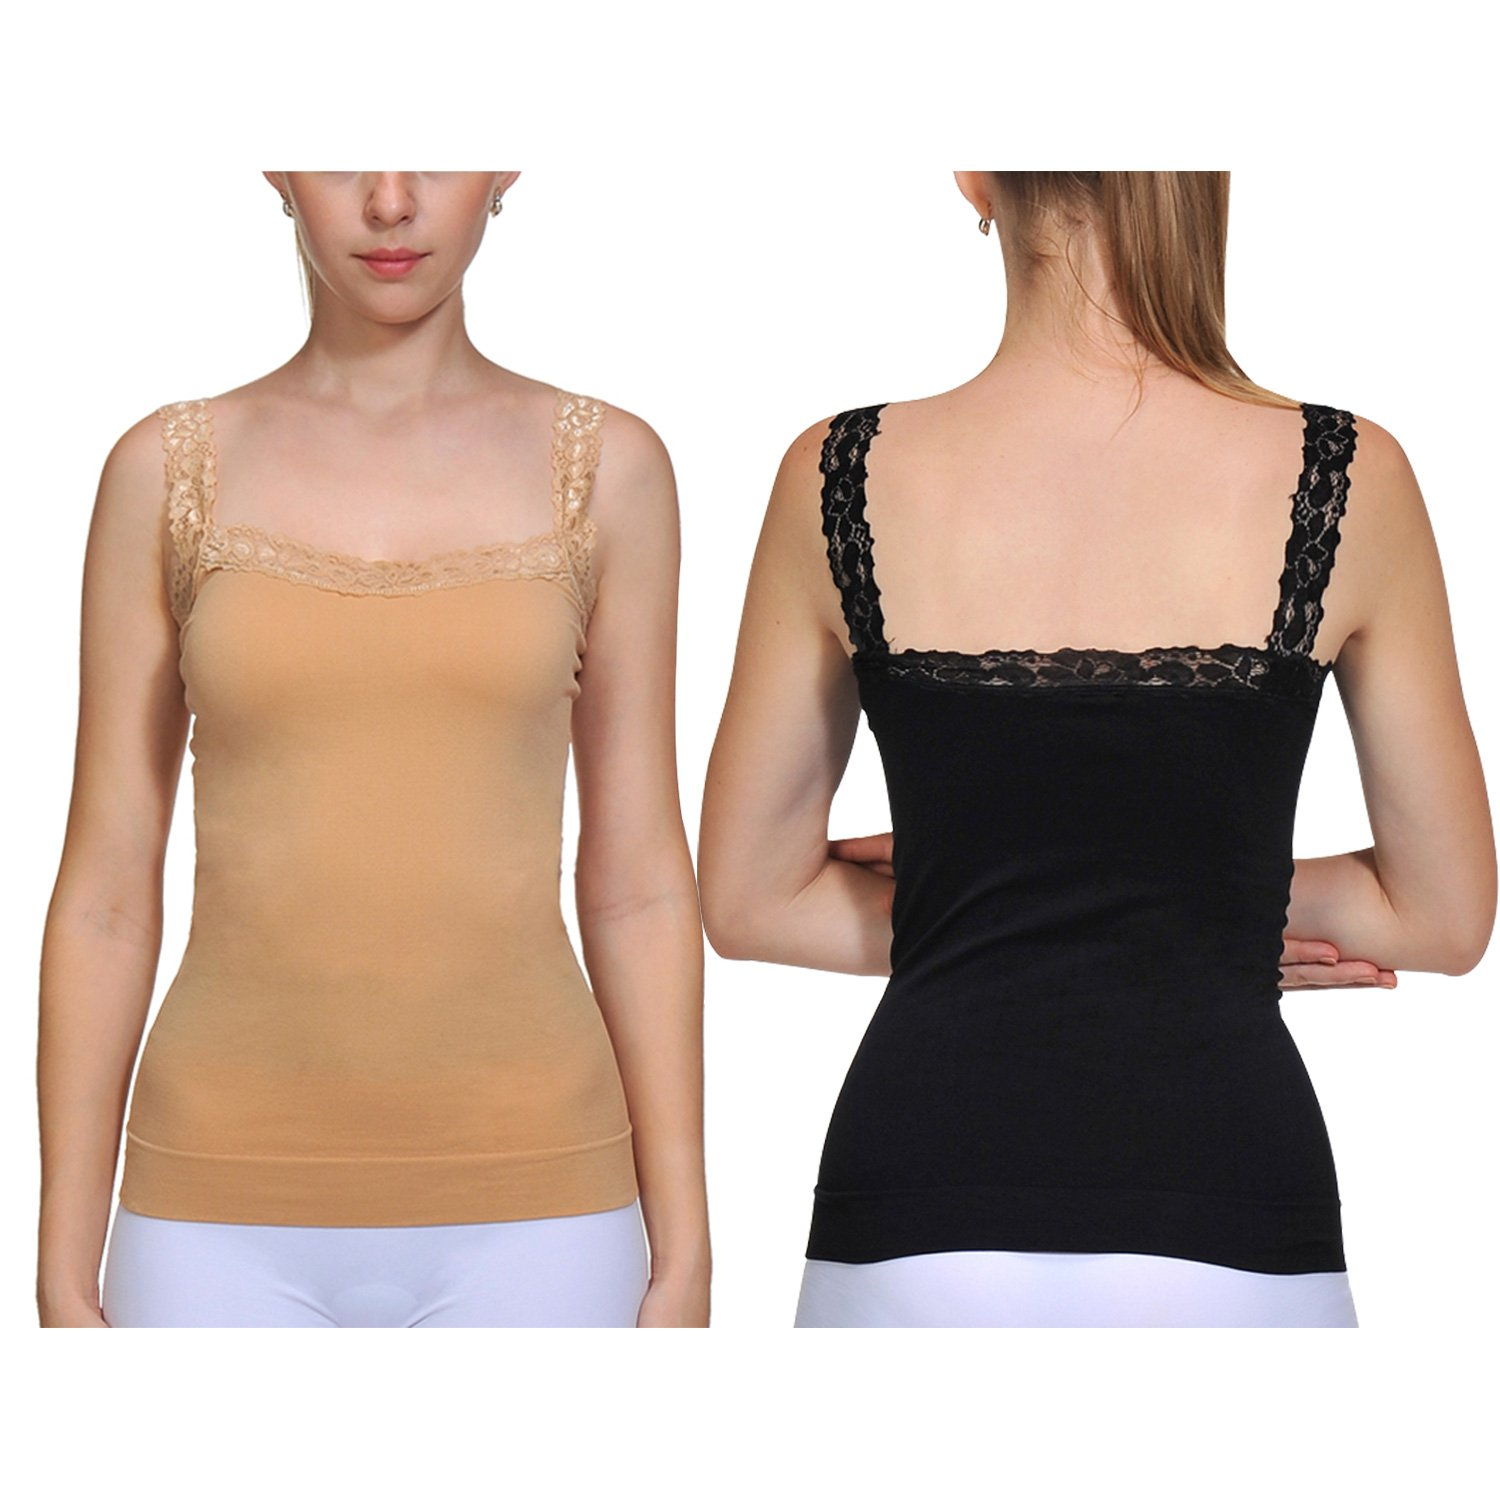 9ff95751ffc75 Top1  BOMIMI Women s Camisole Tank Top Sexy Lace Straps Lingerie Sleep  Lounge Cami Silk Top 2 Pack